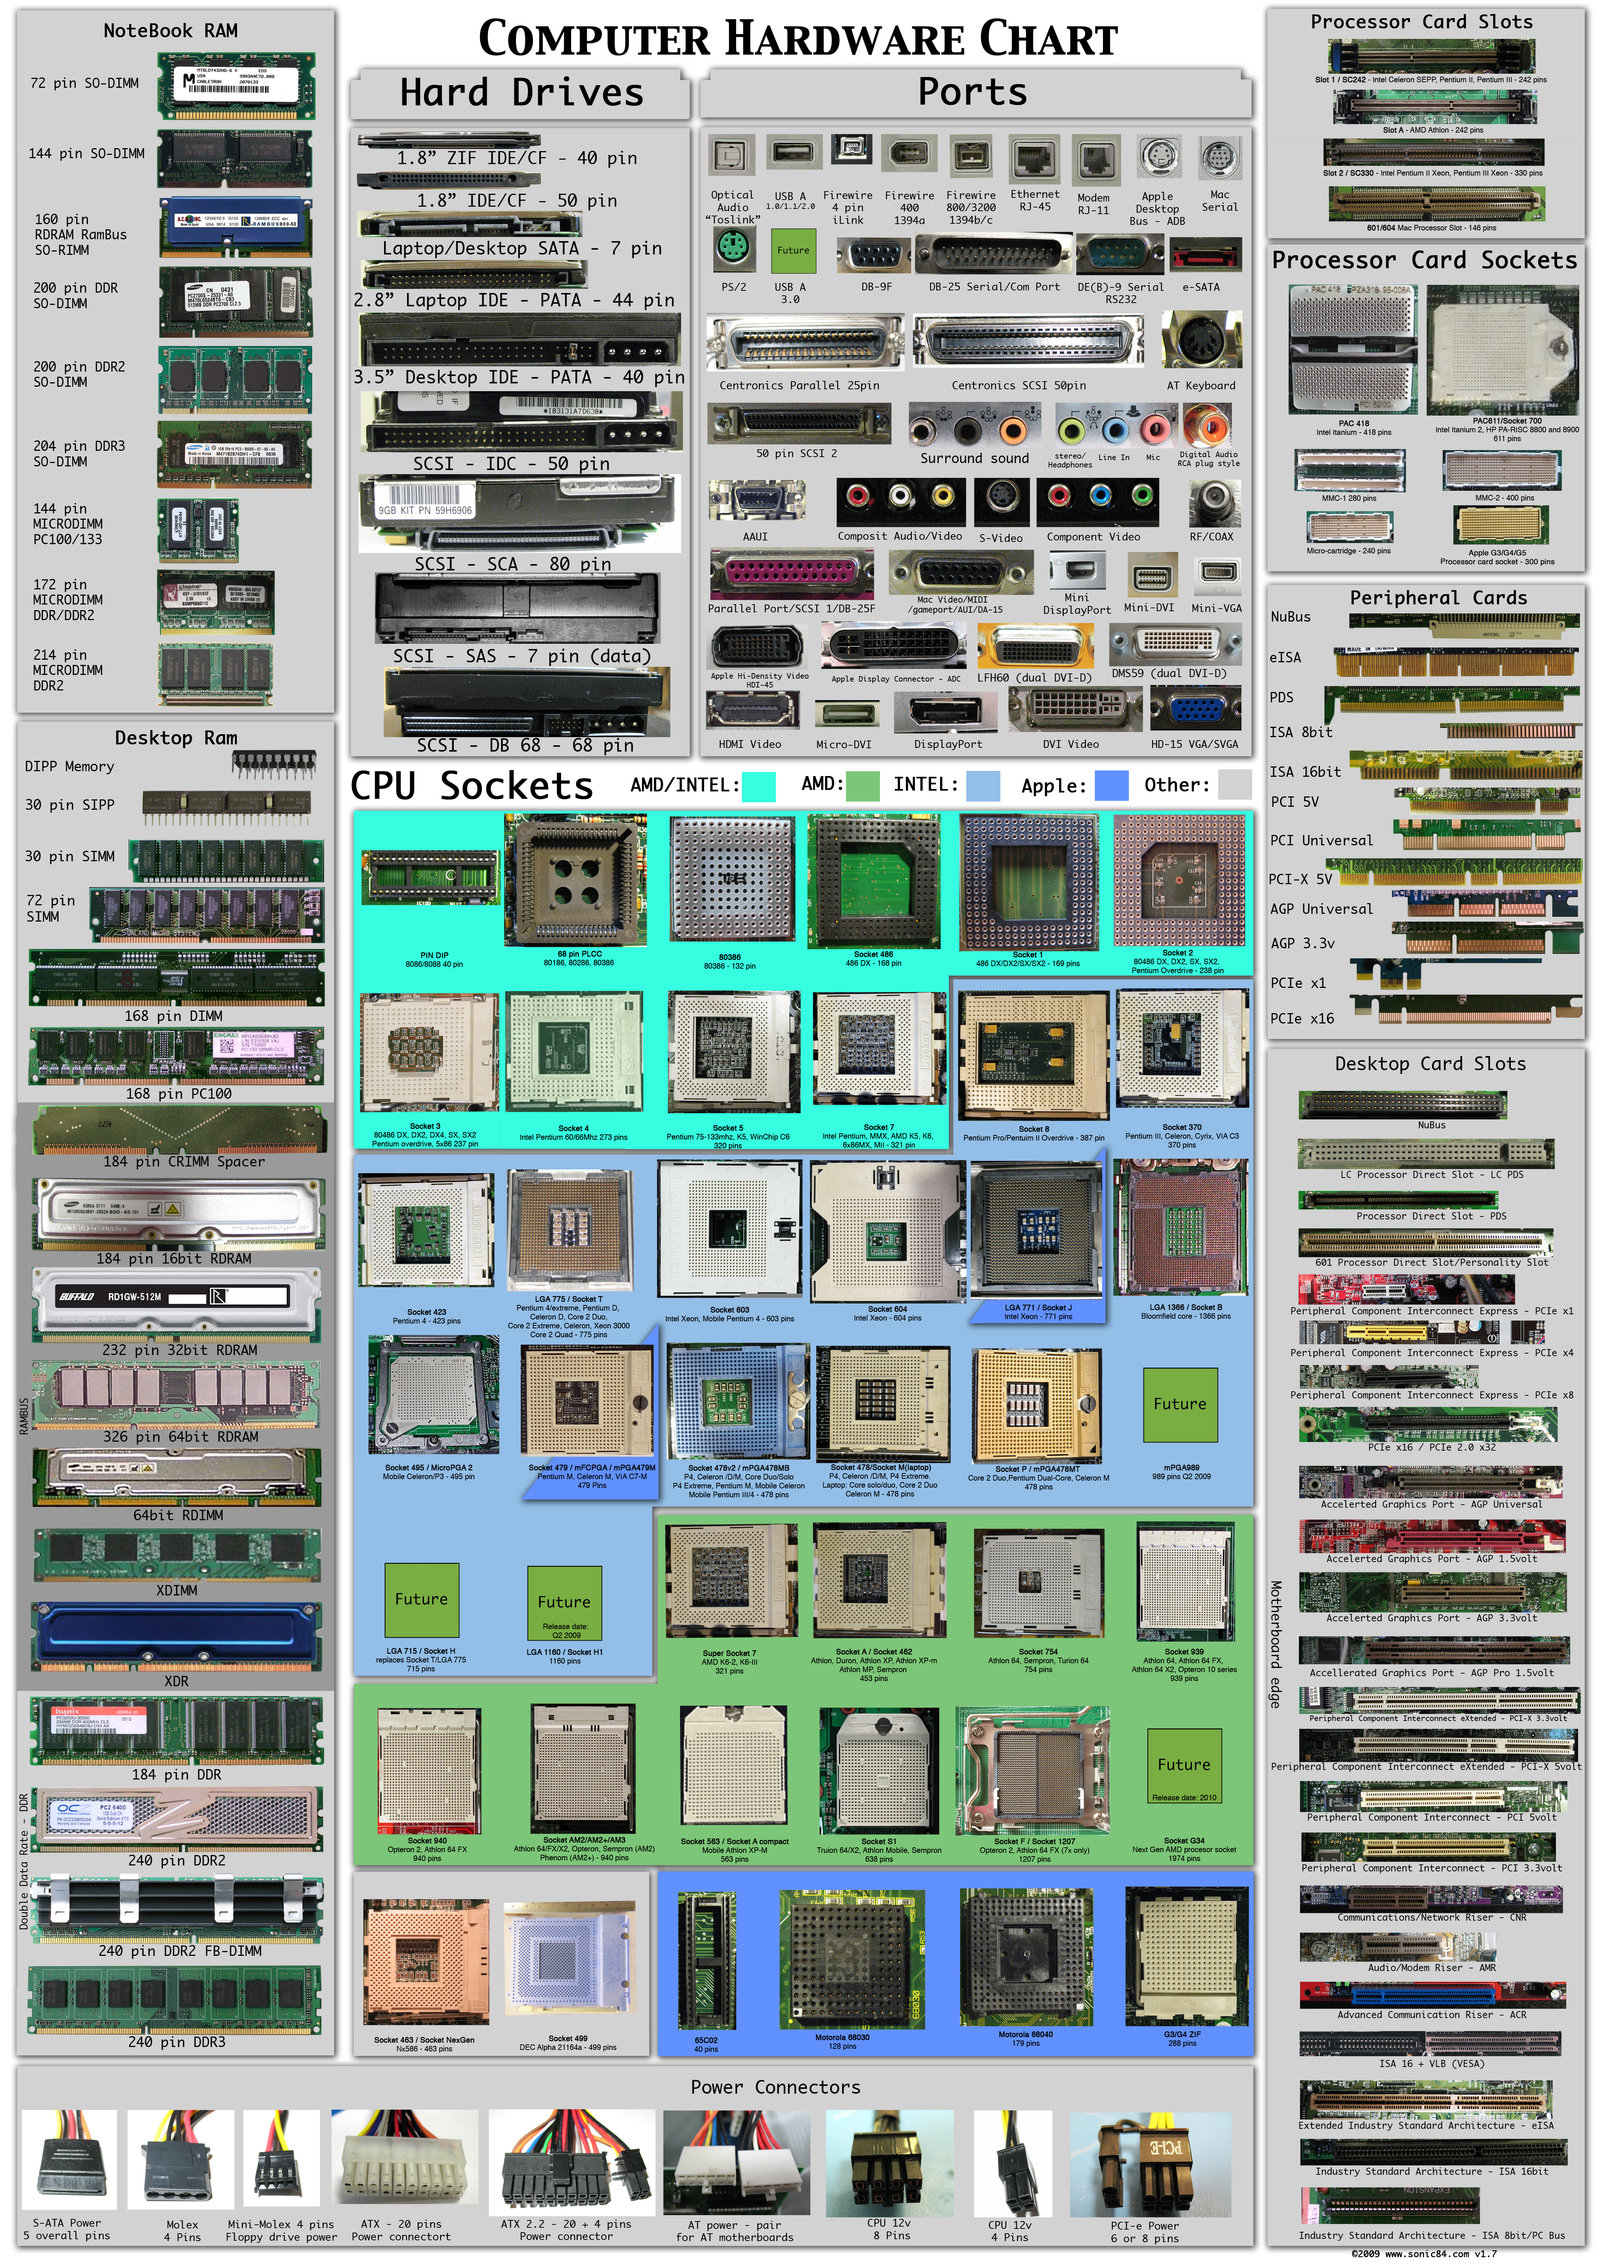 Computer Hardware Chart (July 20th, 2009)